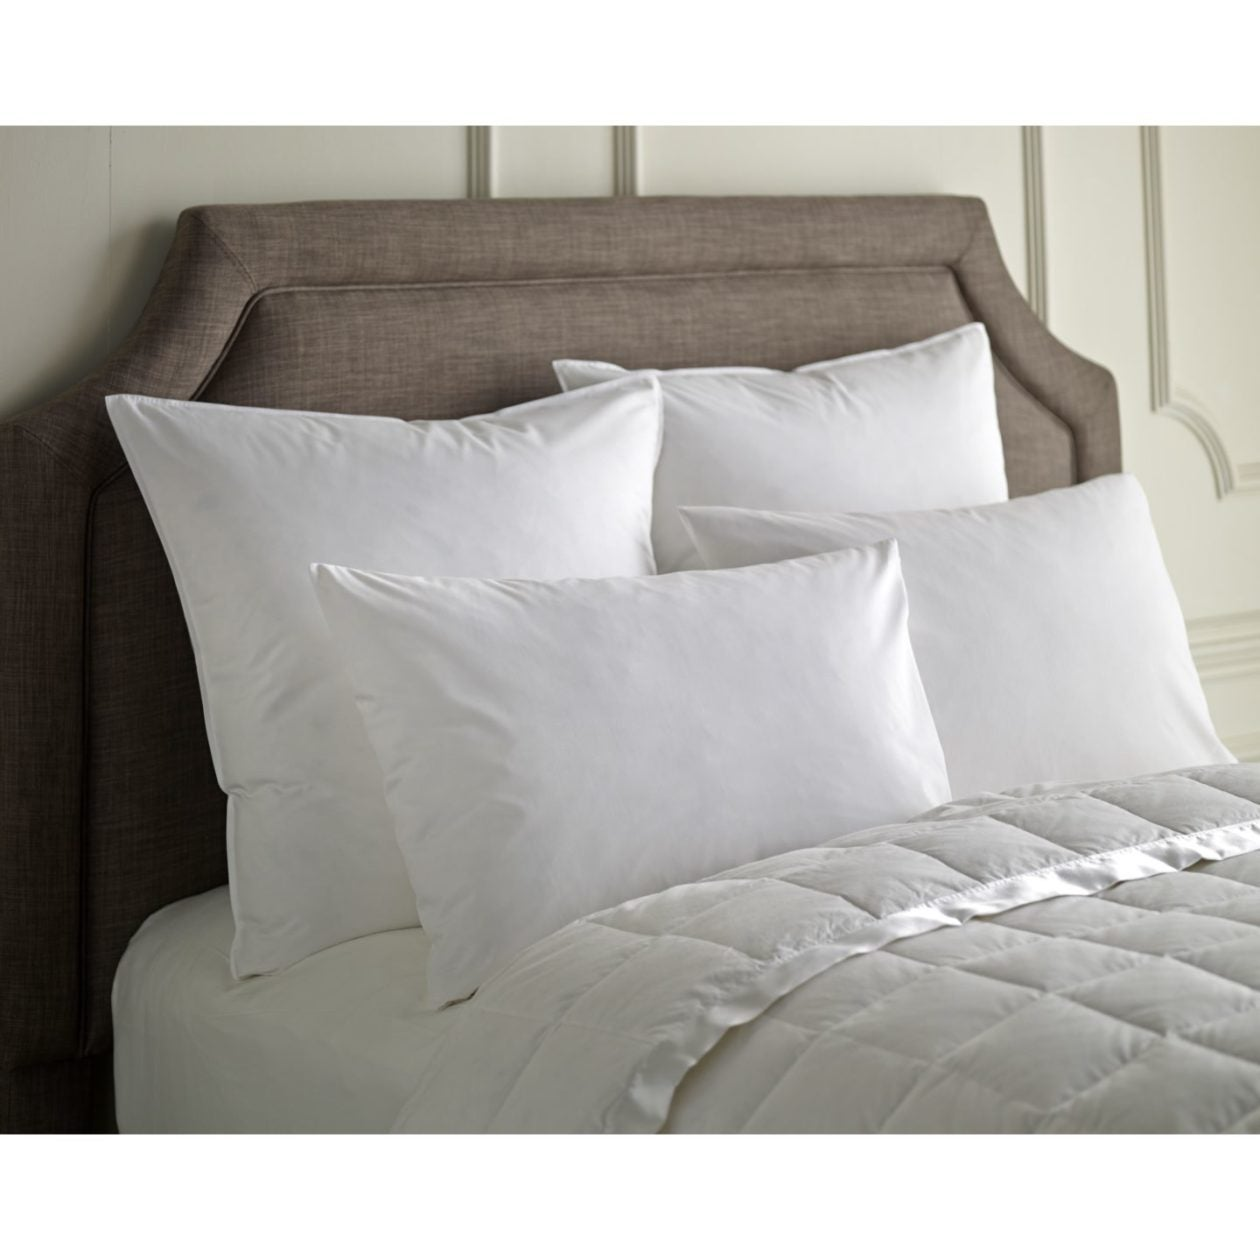 down pillows stacked neatly on white bed